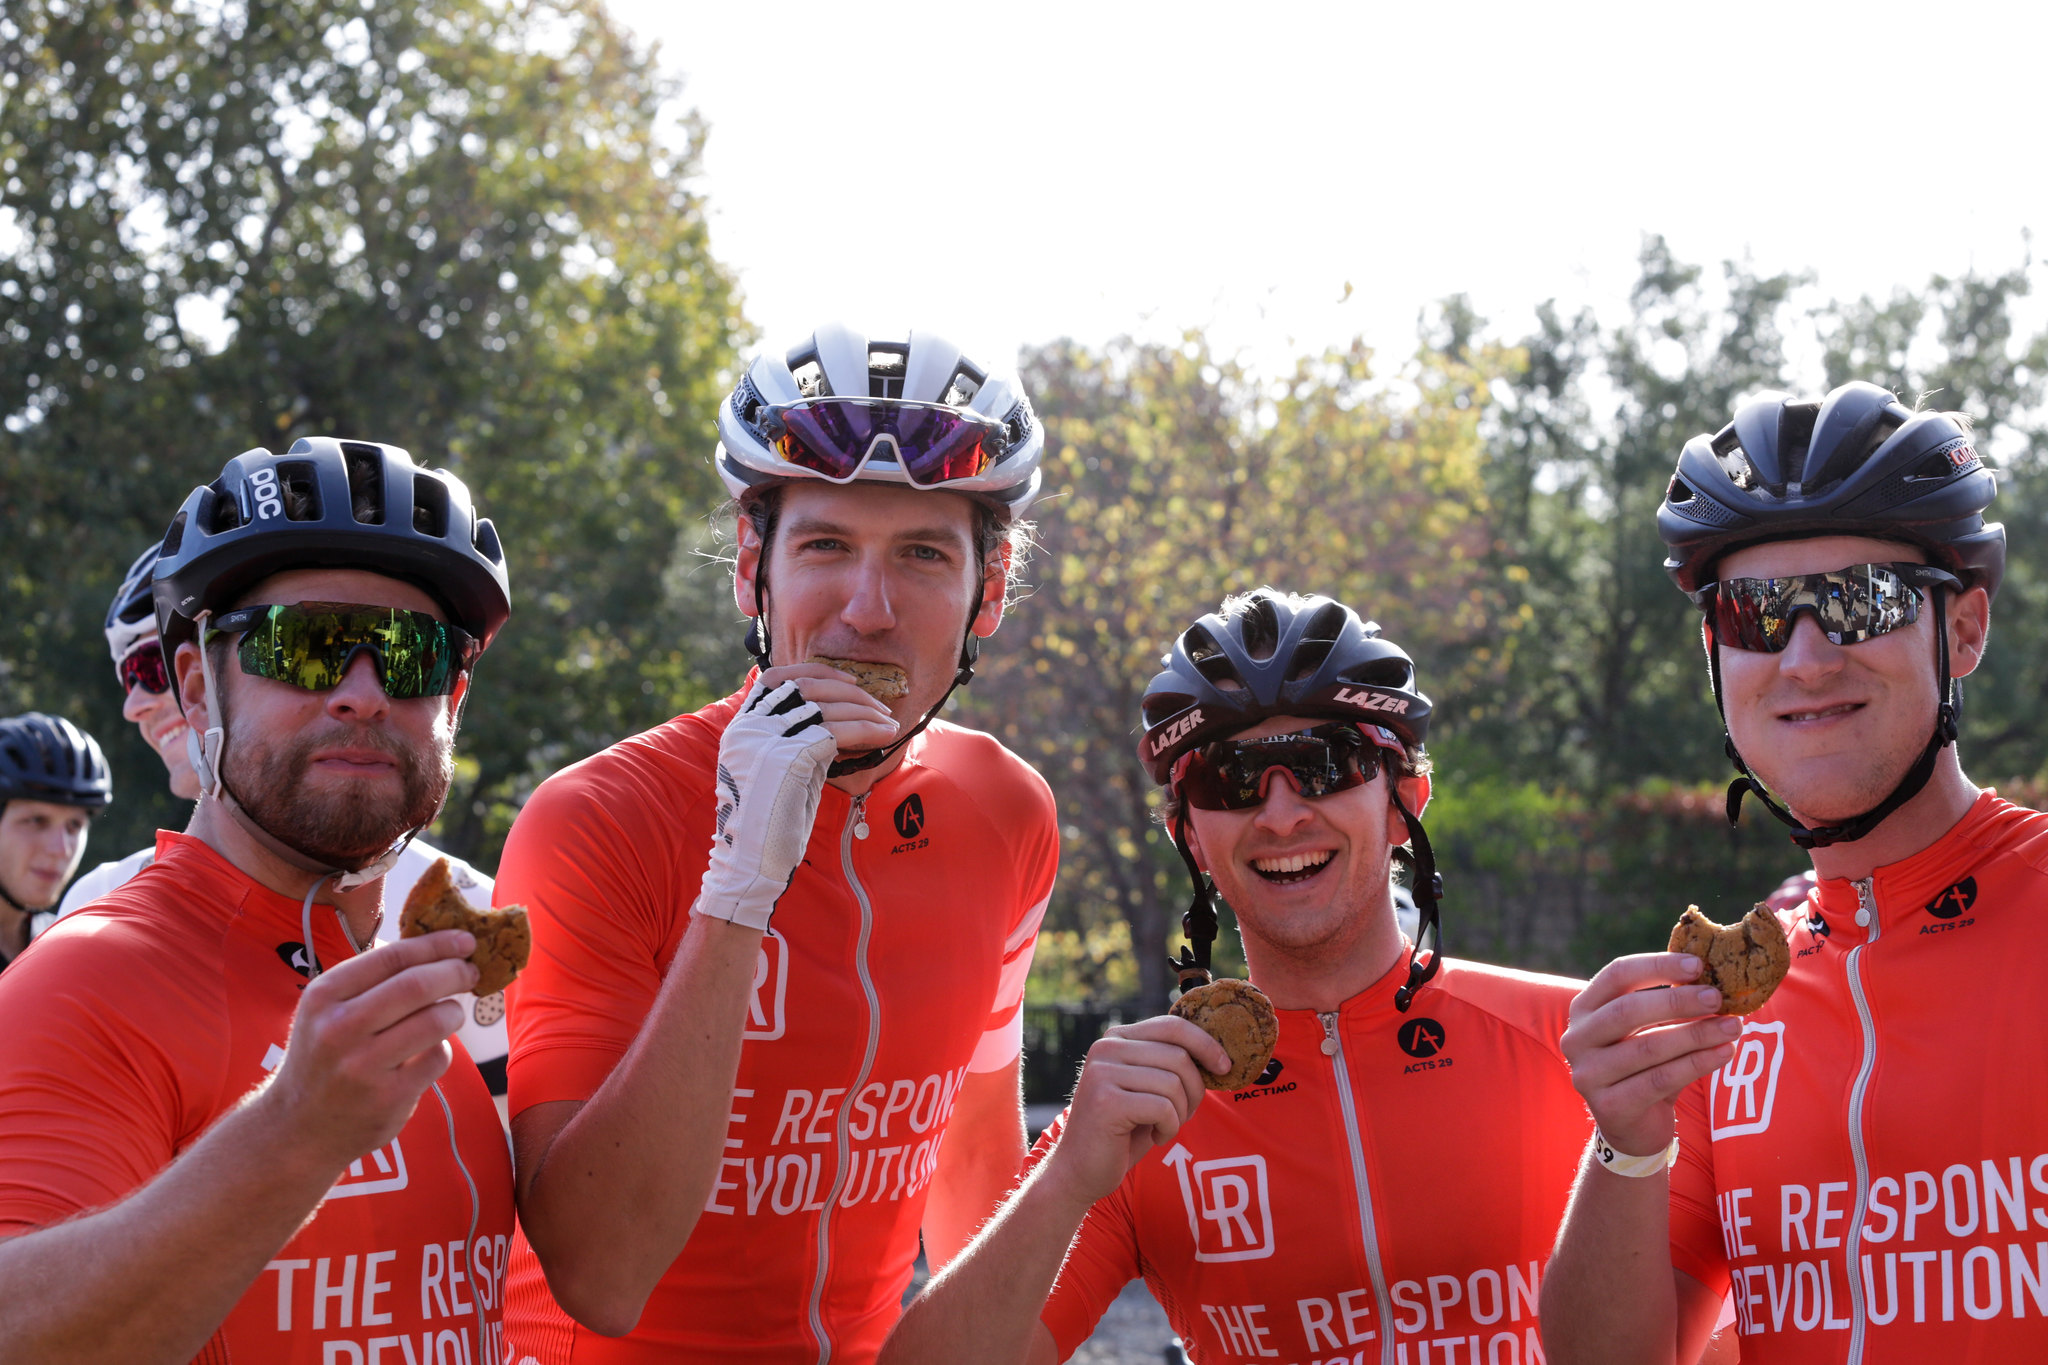 #3 - Free Cookies! - Phil's Cookie Fondo is a bike ride technically, but it's also a cookie party, with delicious cookies at every aid station from a renowned LA bakery. #earnyourcookies